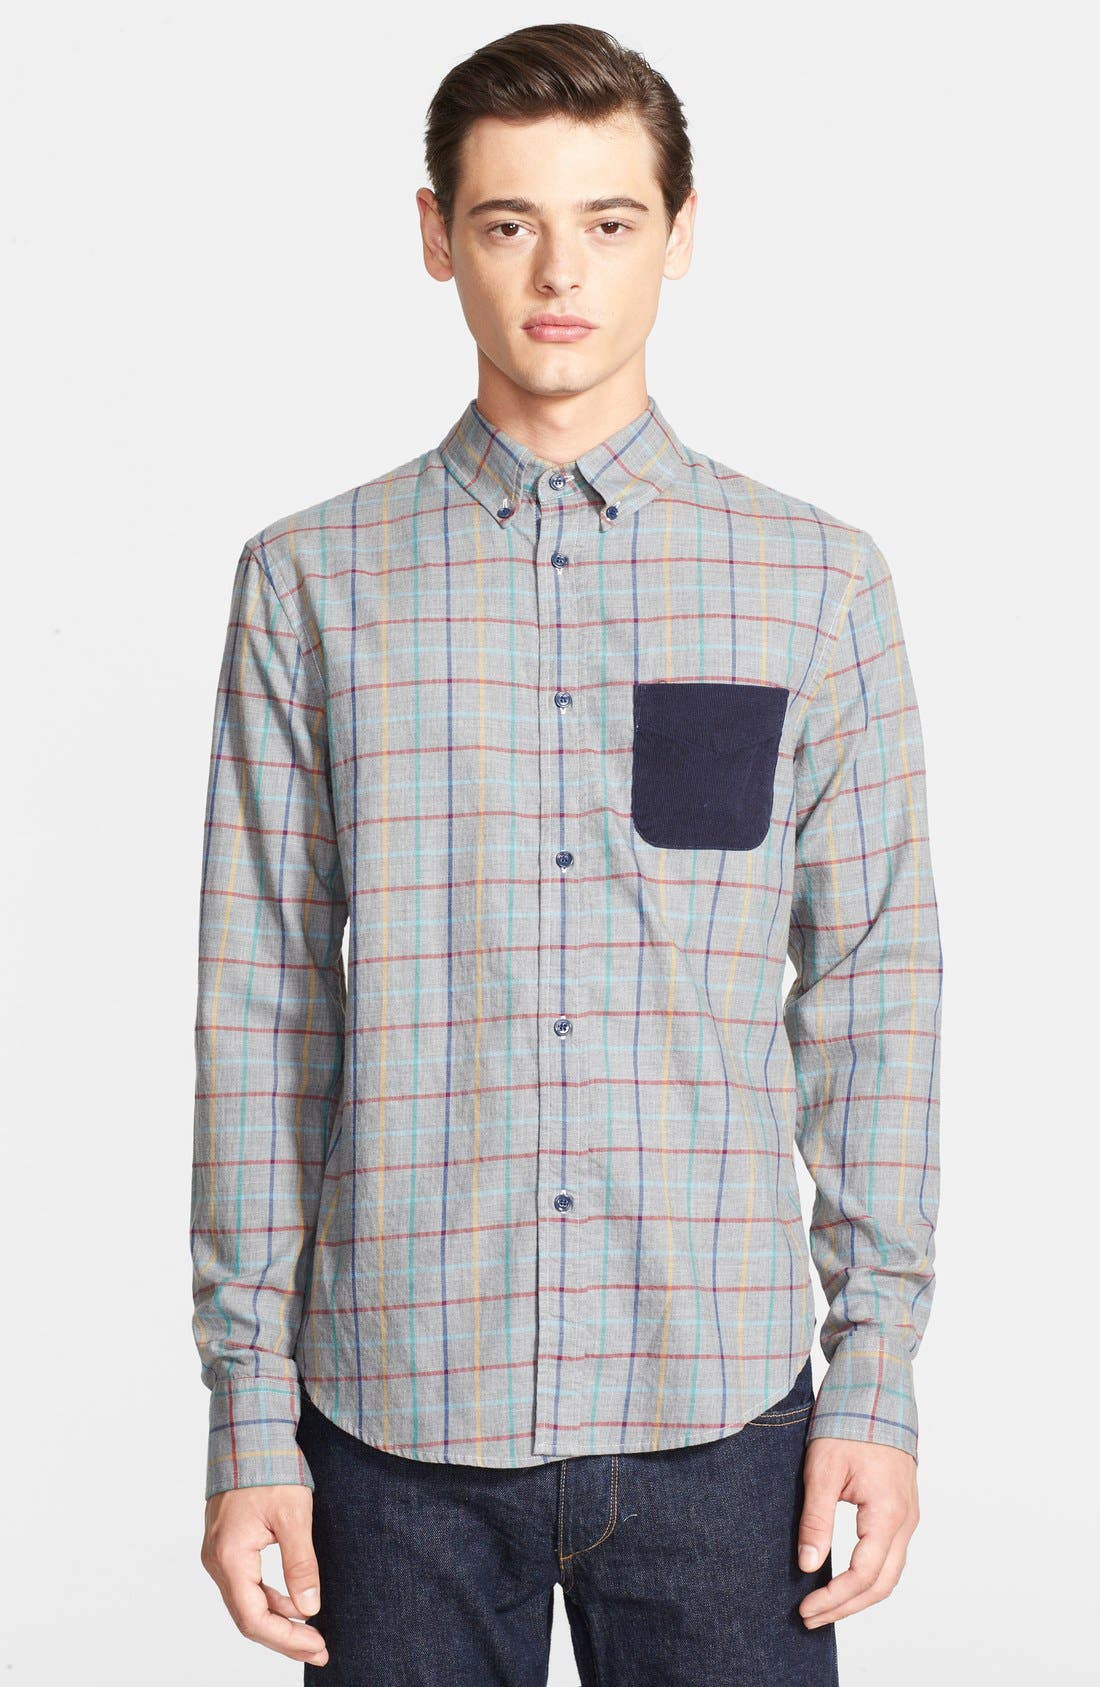 Alternate Image 1 Selected - Band of Outsiders Extra Trim Fit Check Sport Shirt